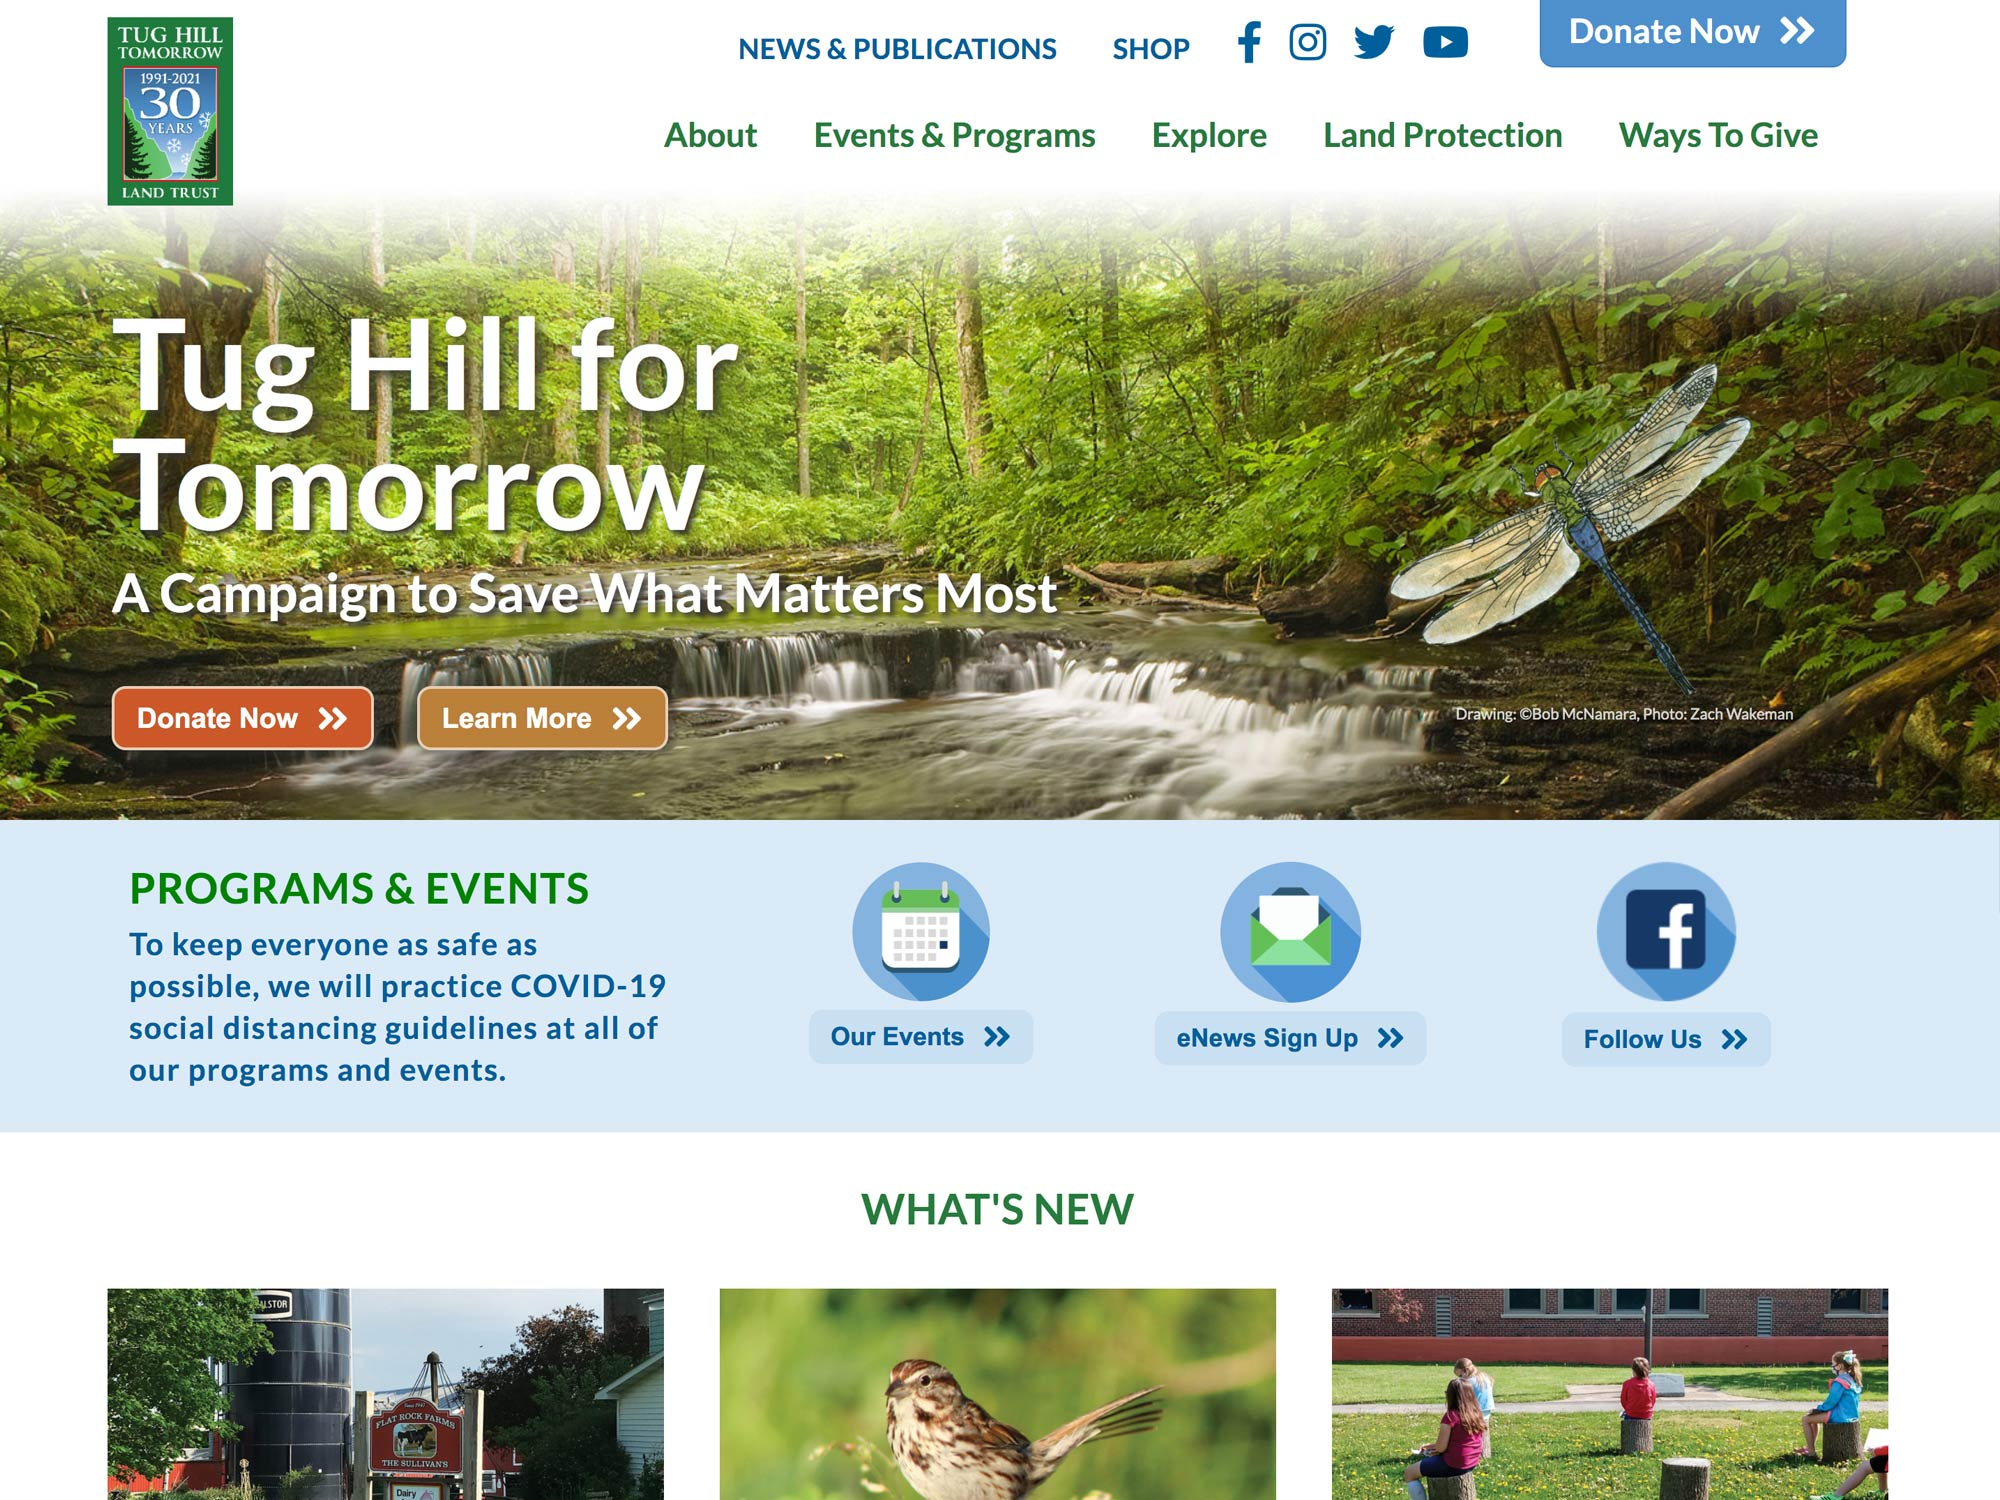 website homepage highlight three year capital campaign